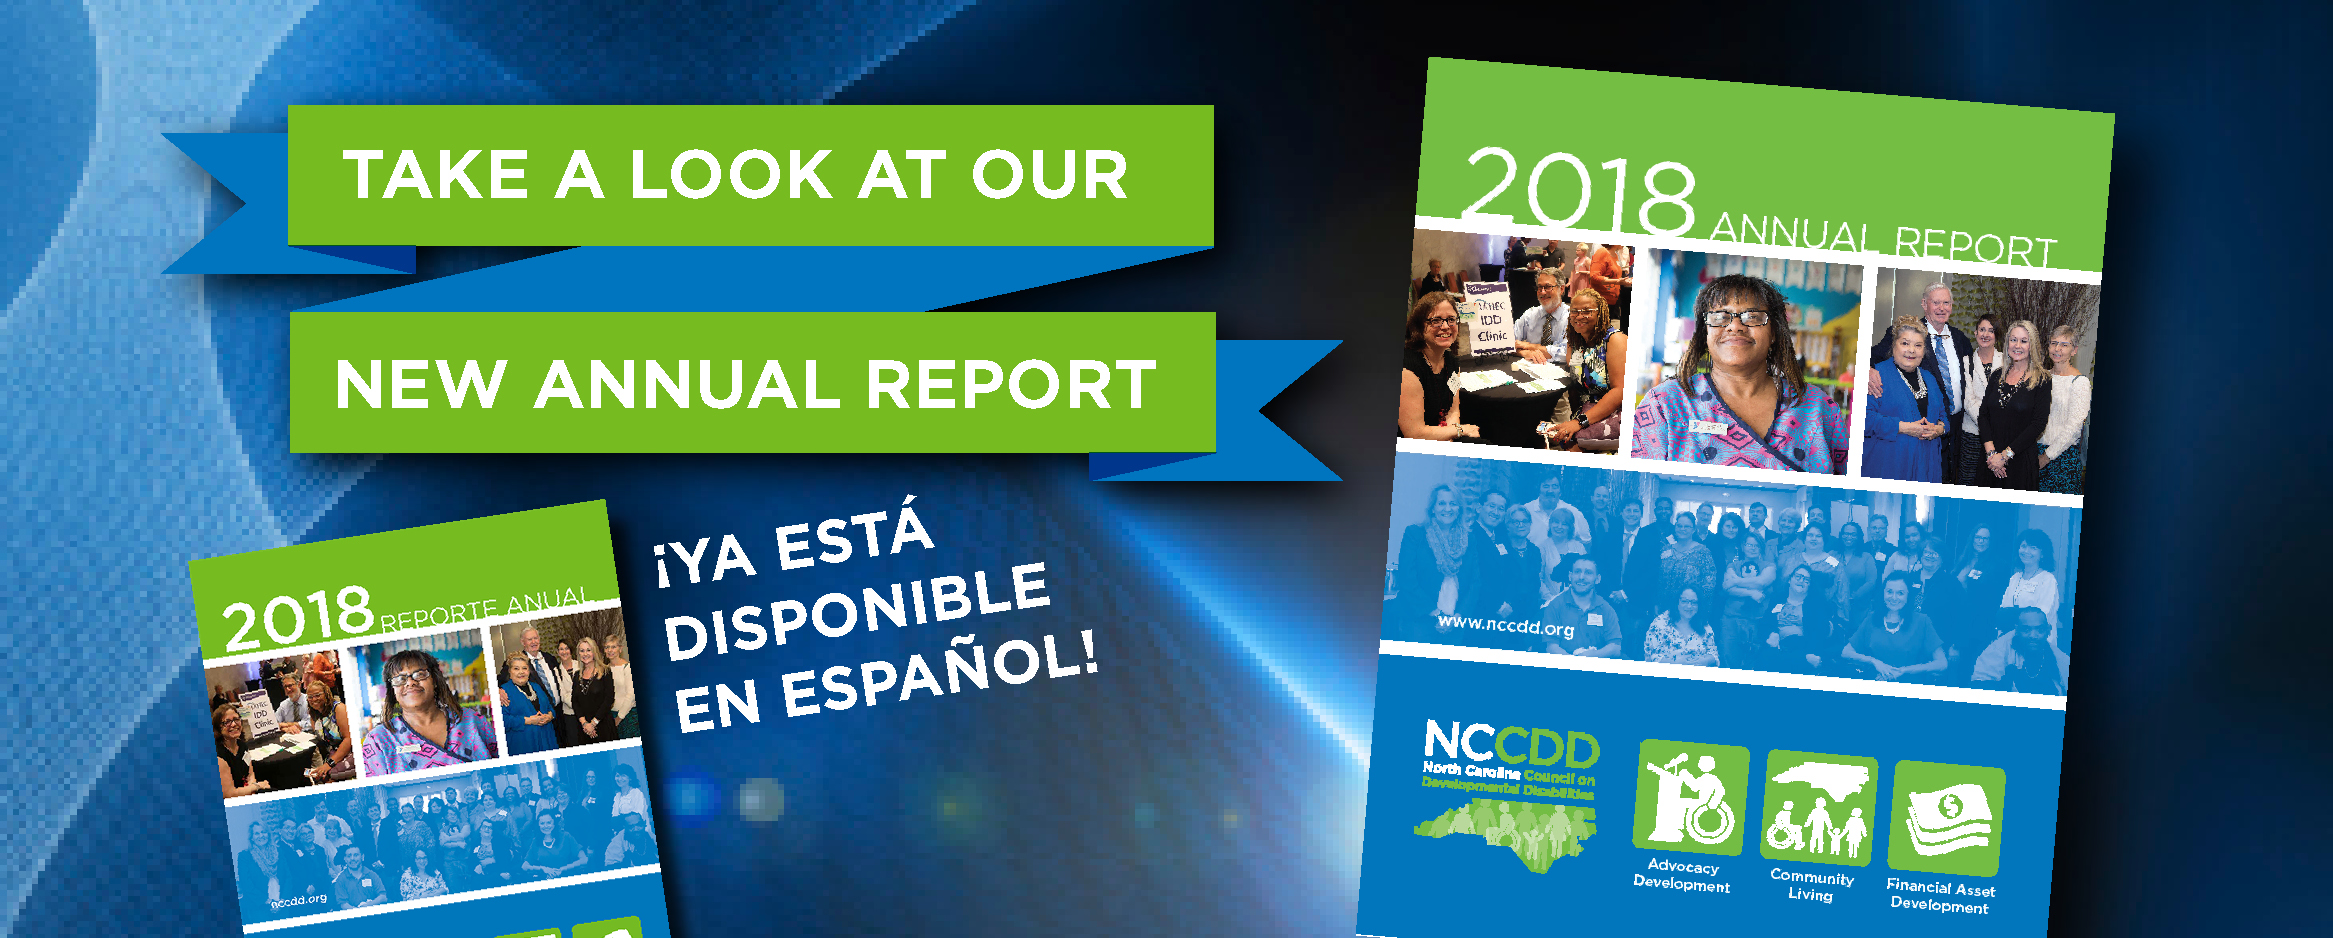 NCCDD 2018 Annual Report ¡Ya está disponible en español!